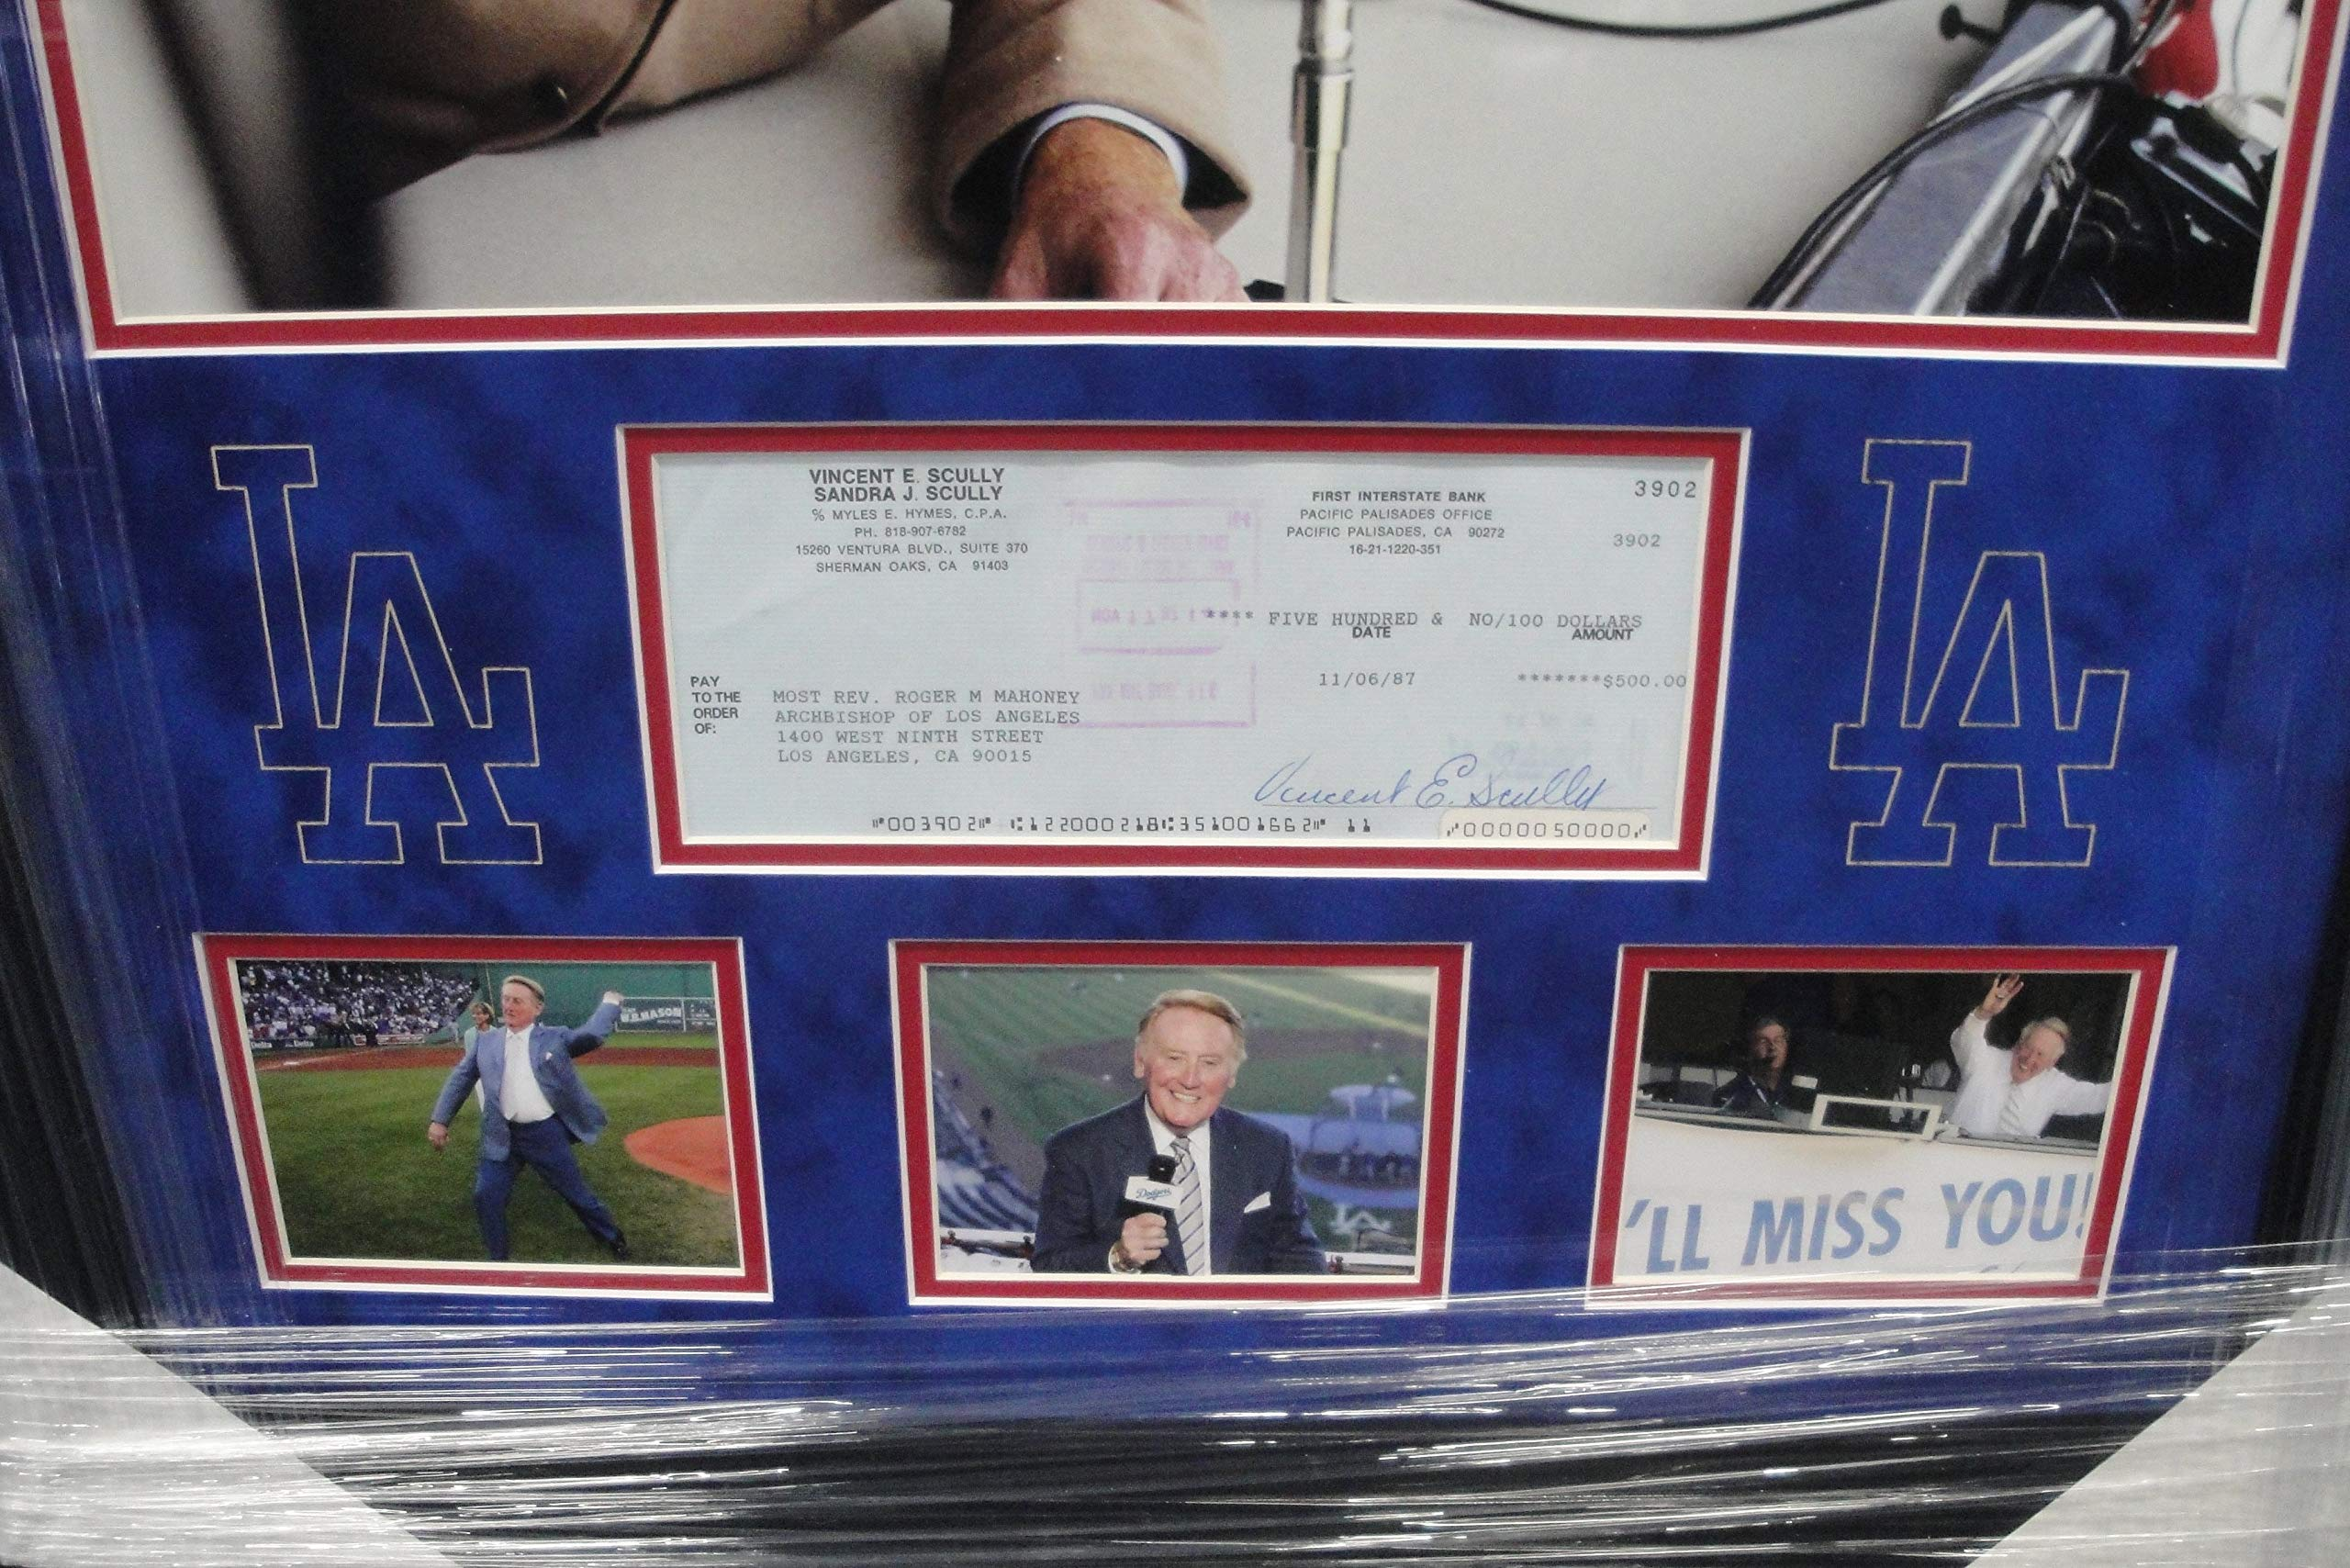 Vin Scully Hand Signed Autographed Personal Check Los Angeles Dodgers Framed